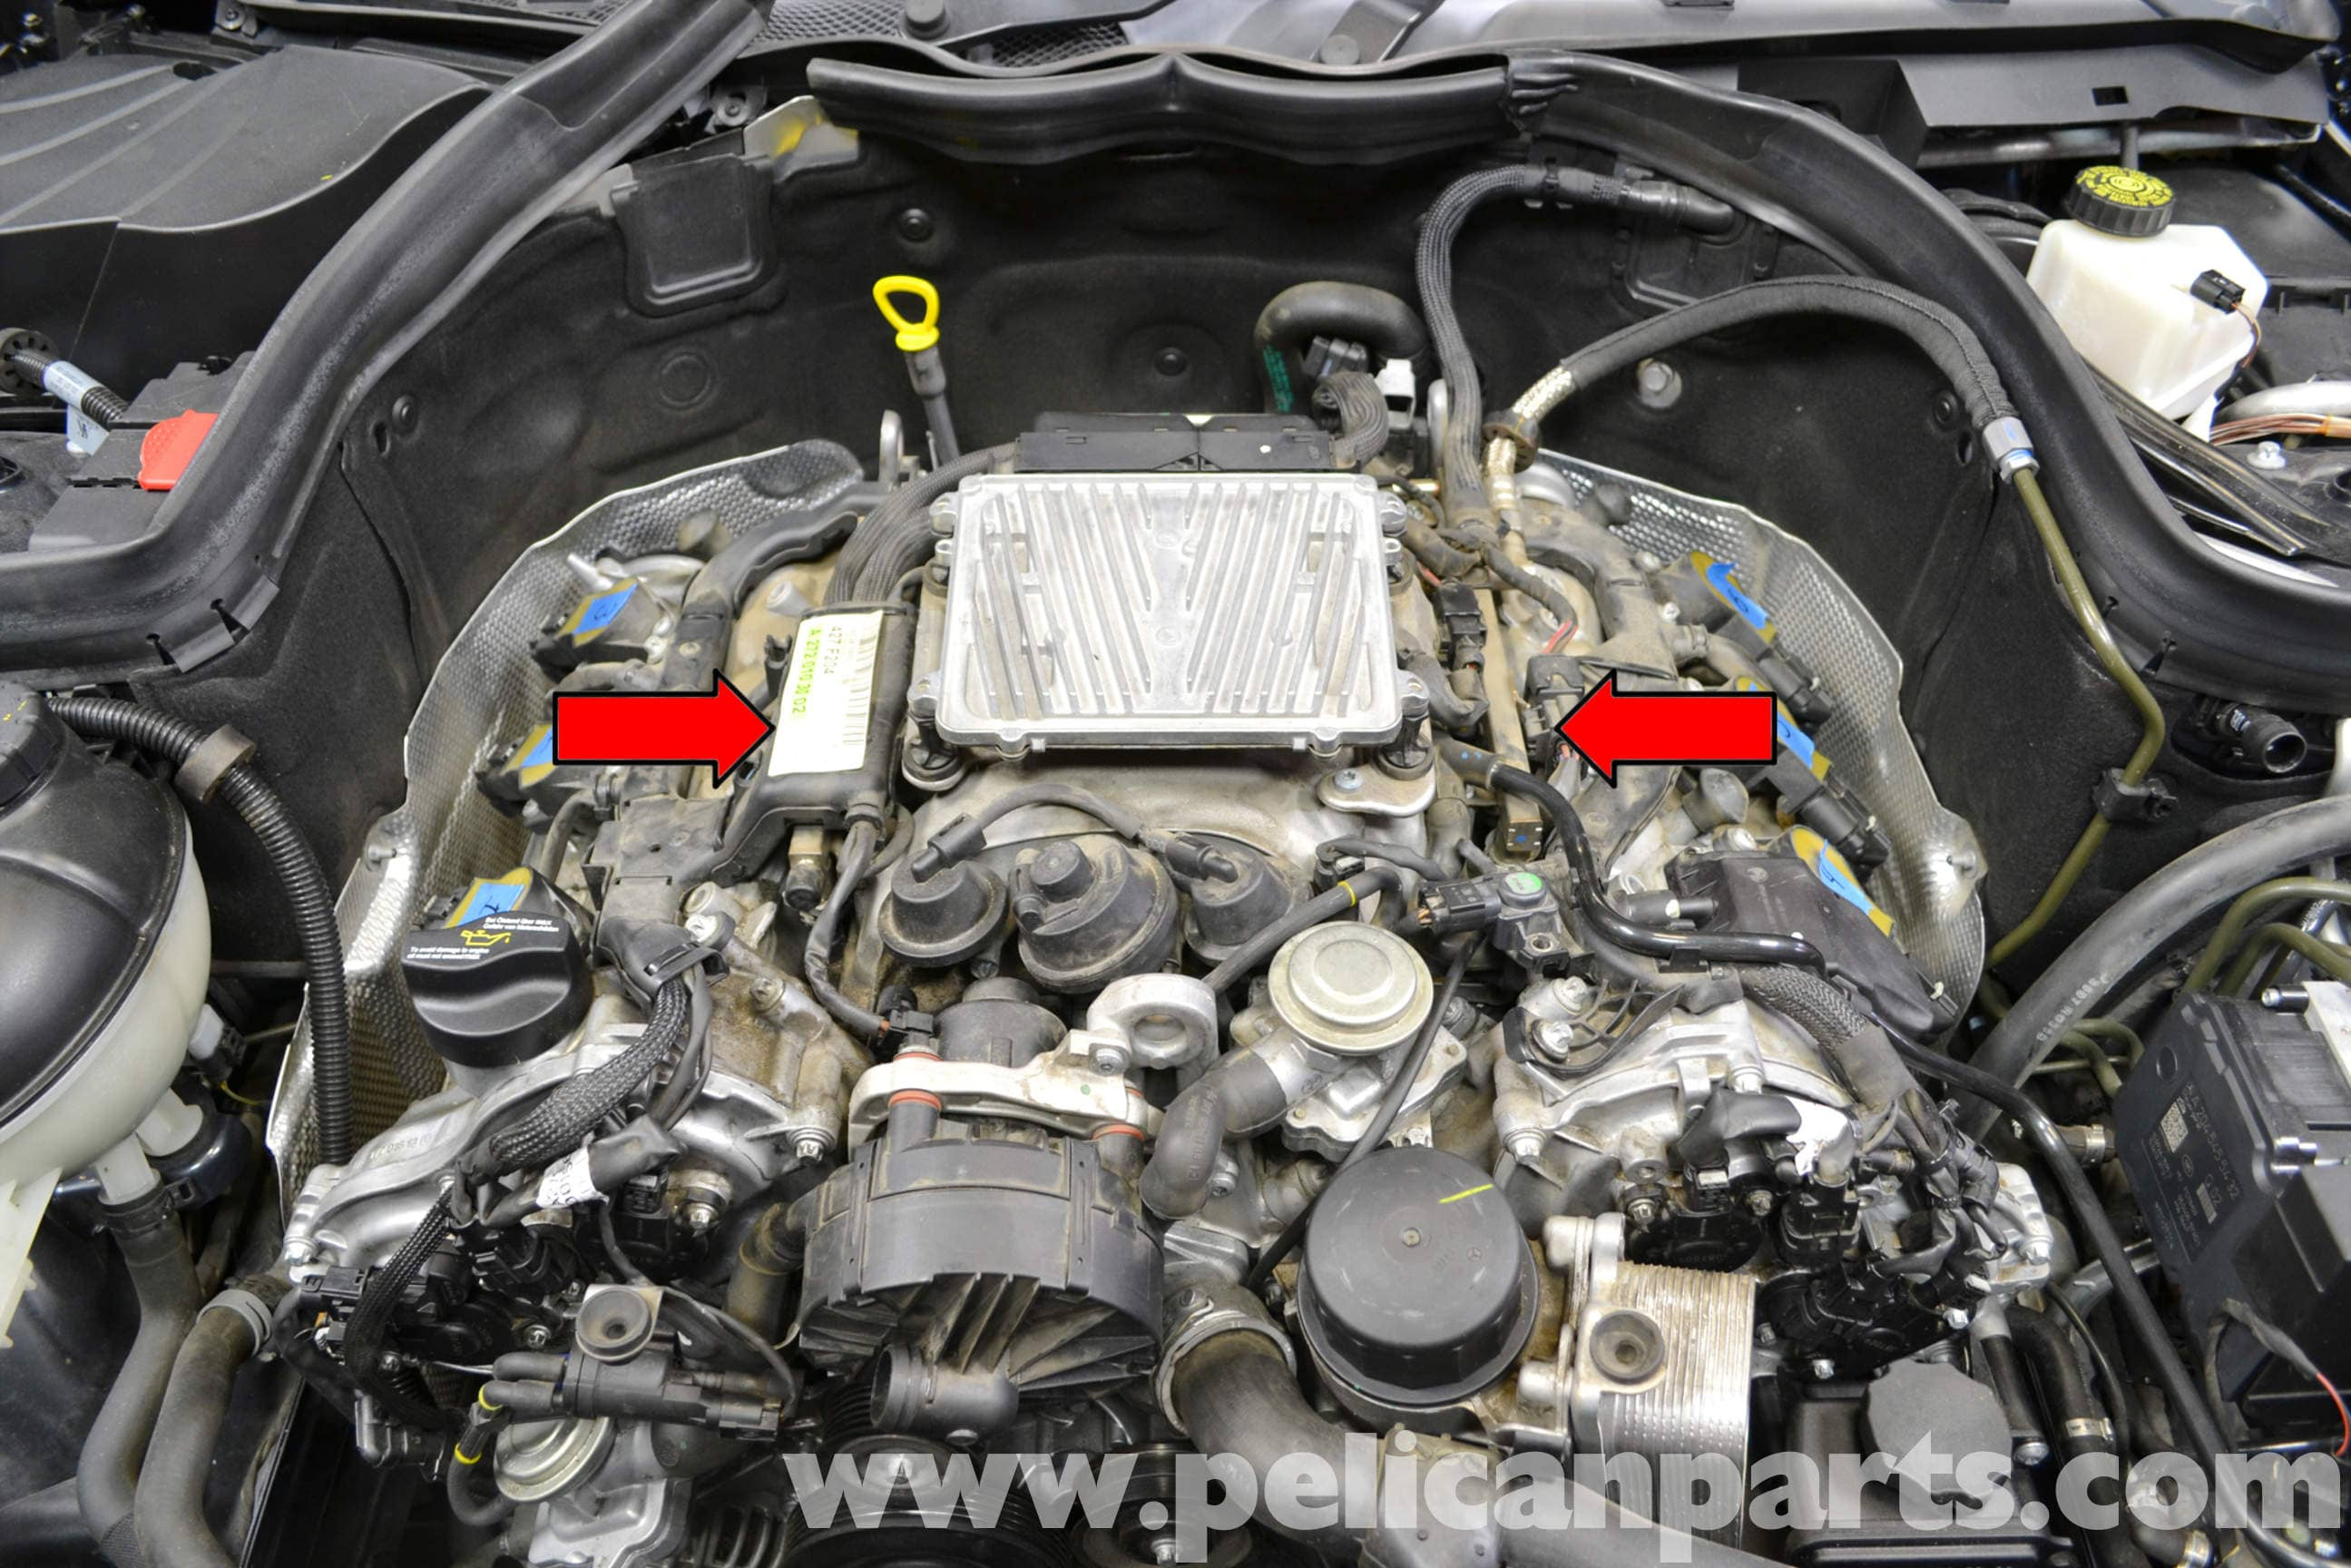 Mercedes-benz W204 Intake Manifold Replacement